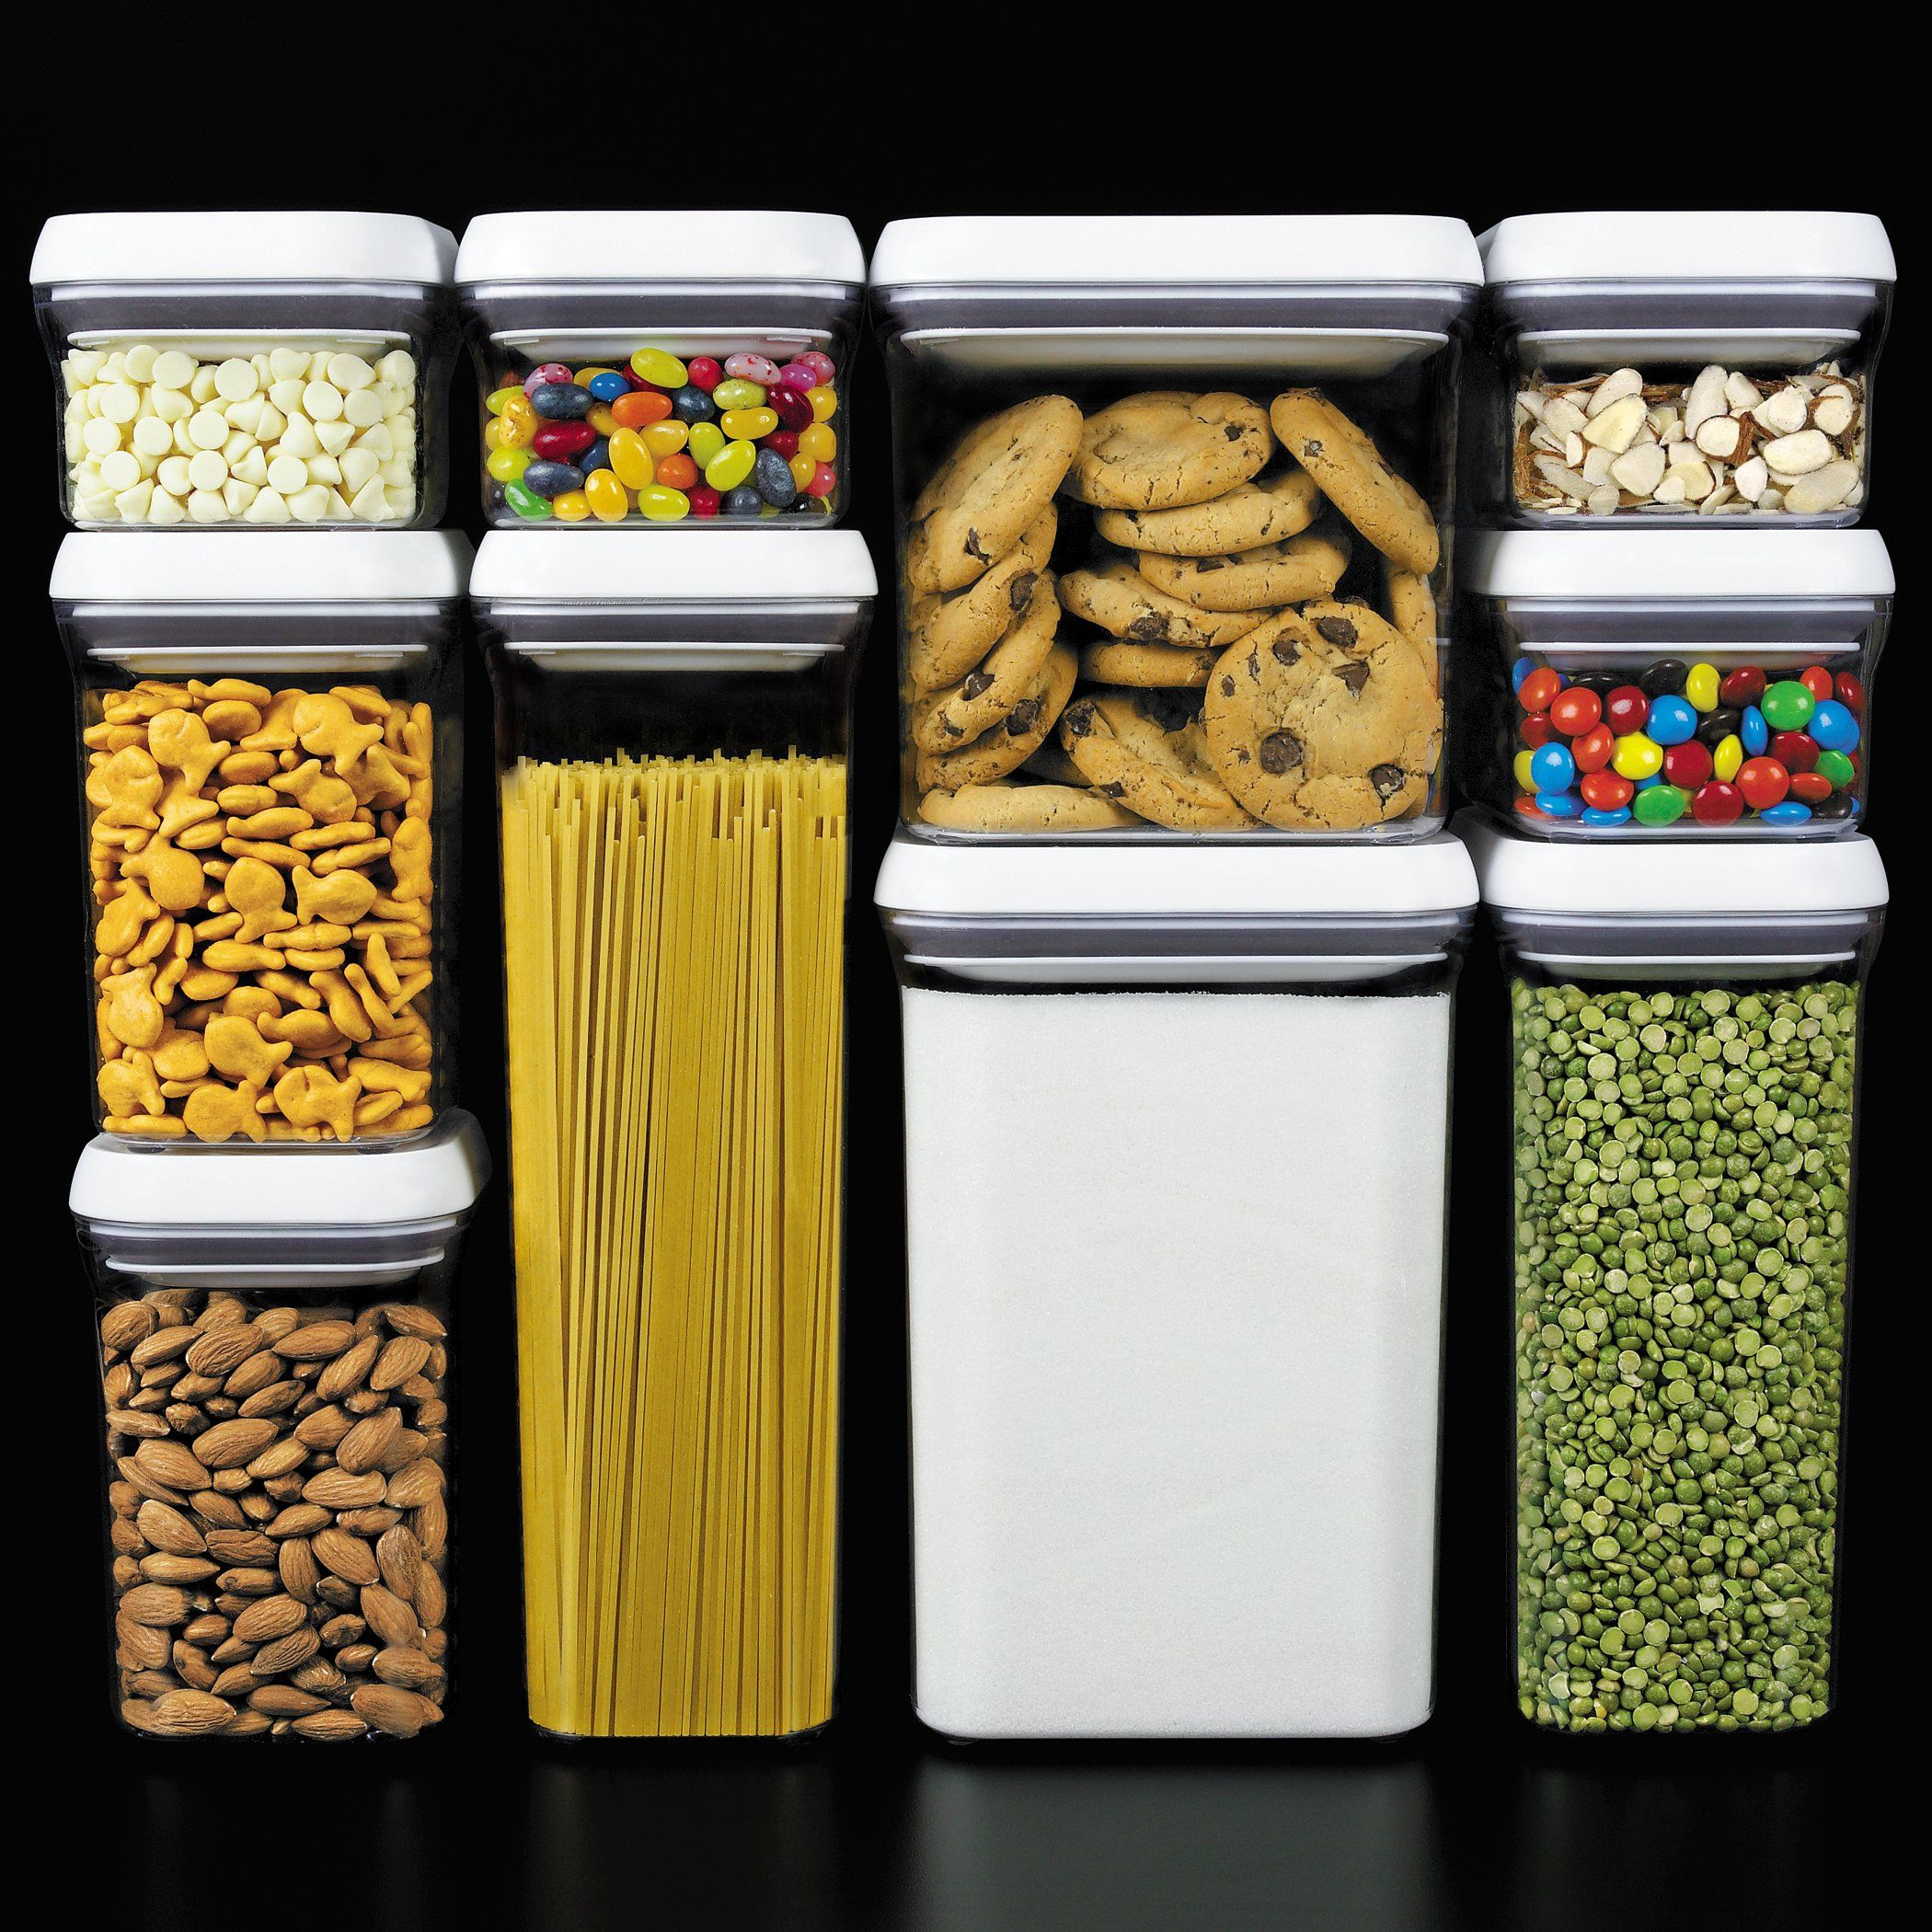 OXO 10 Piece Good Grips Pop Containers Set Storage Organization